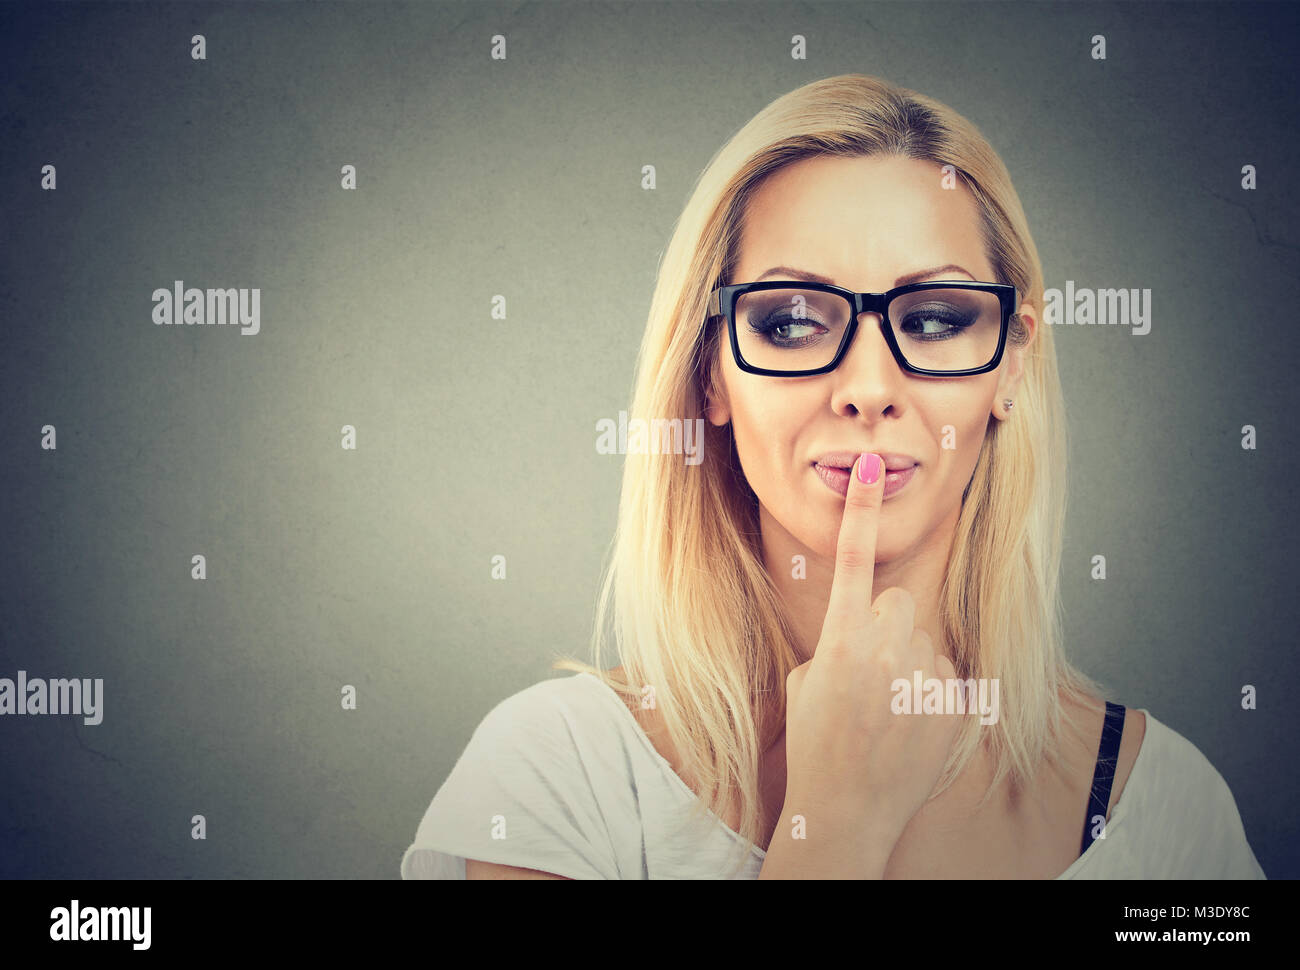 Young flirty model in eyeglasses touching lips looking away on gray. - Stock Image